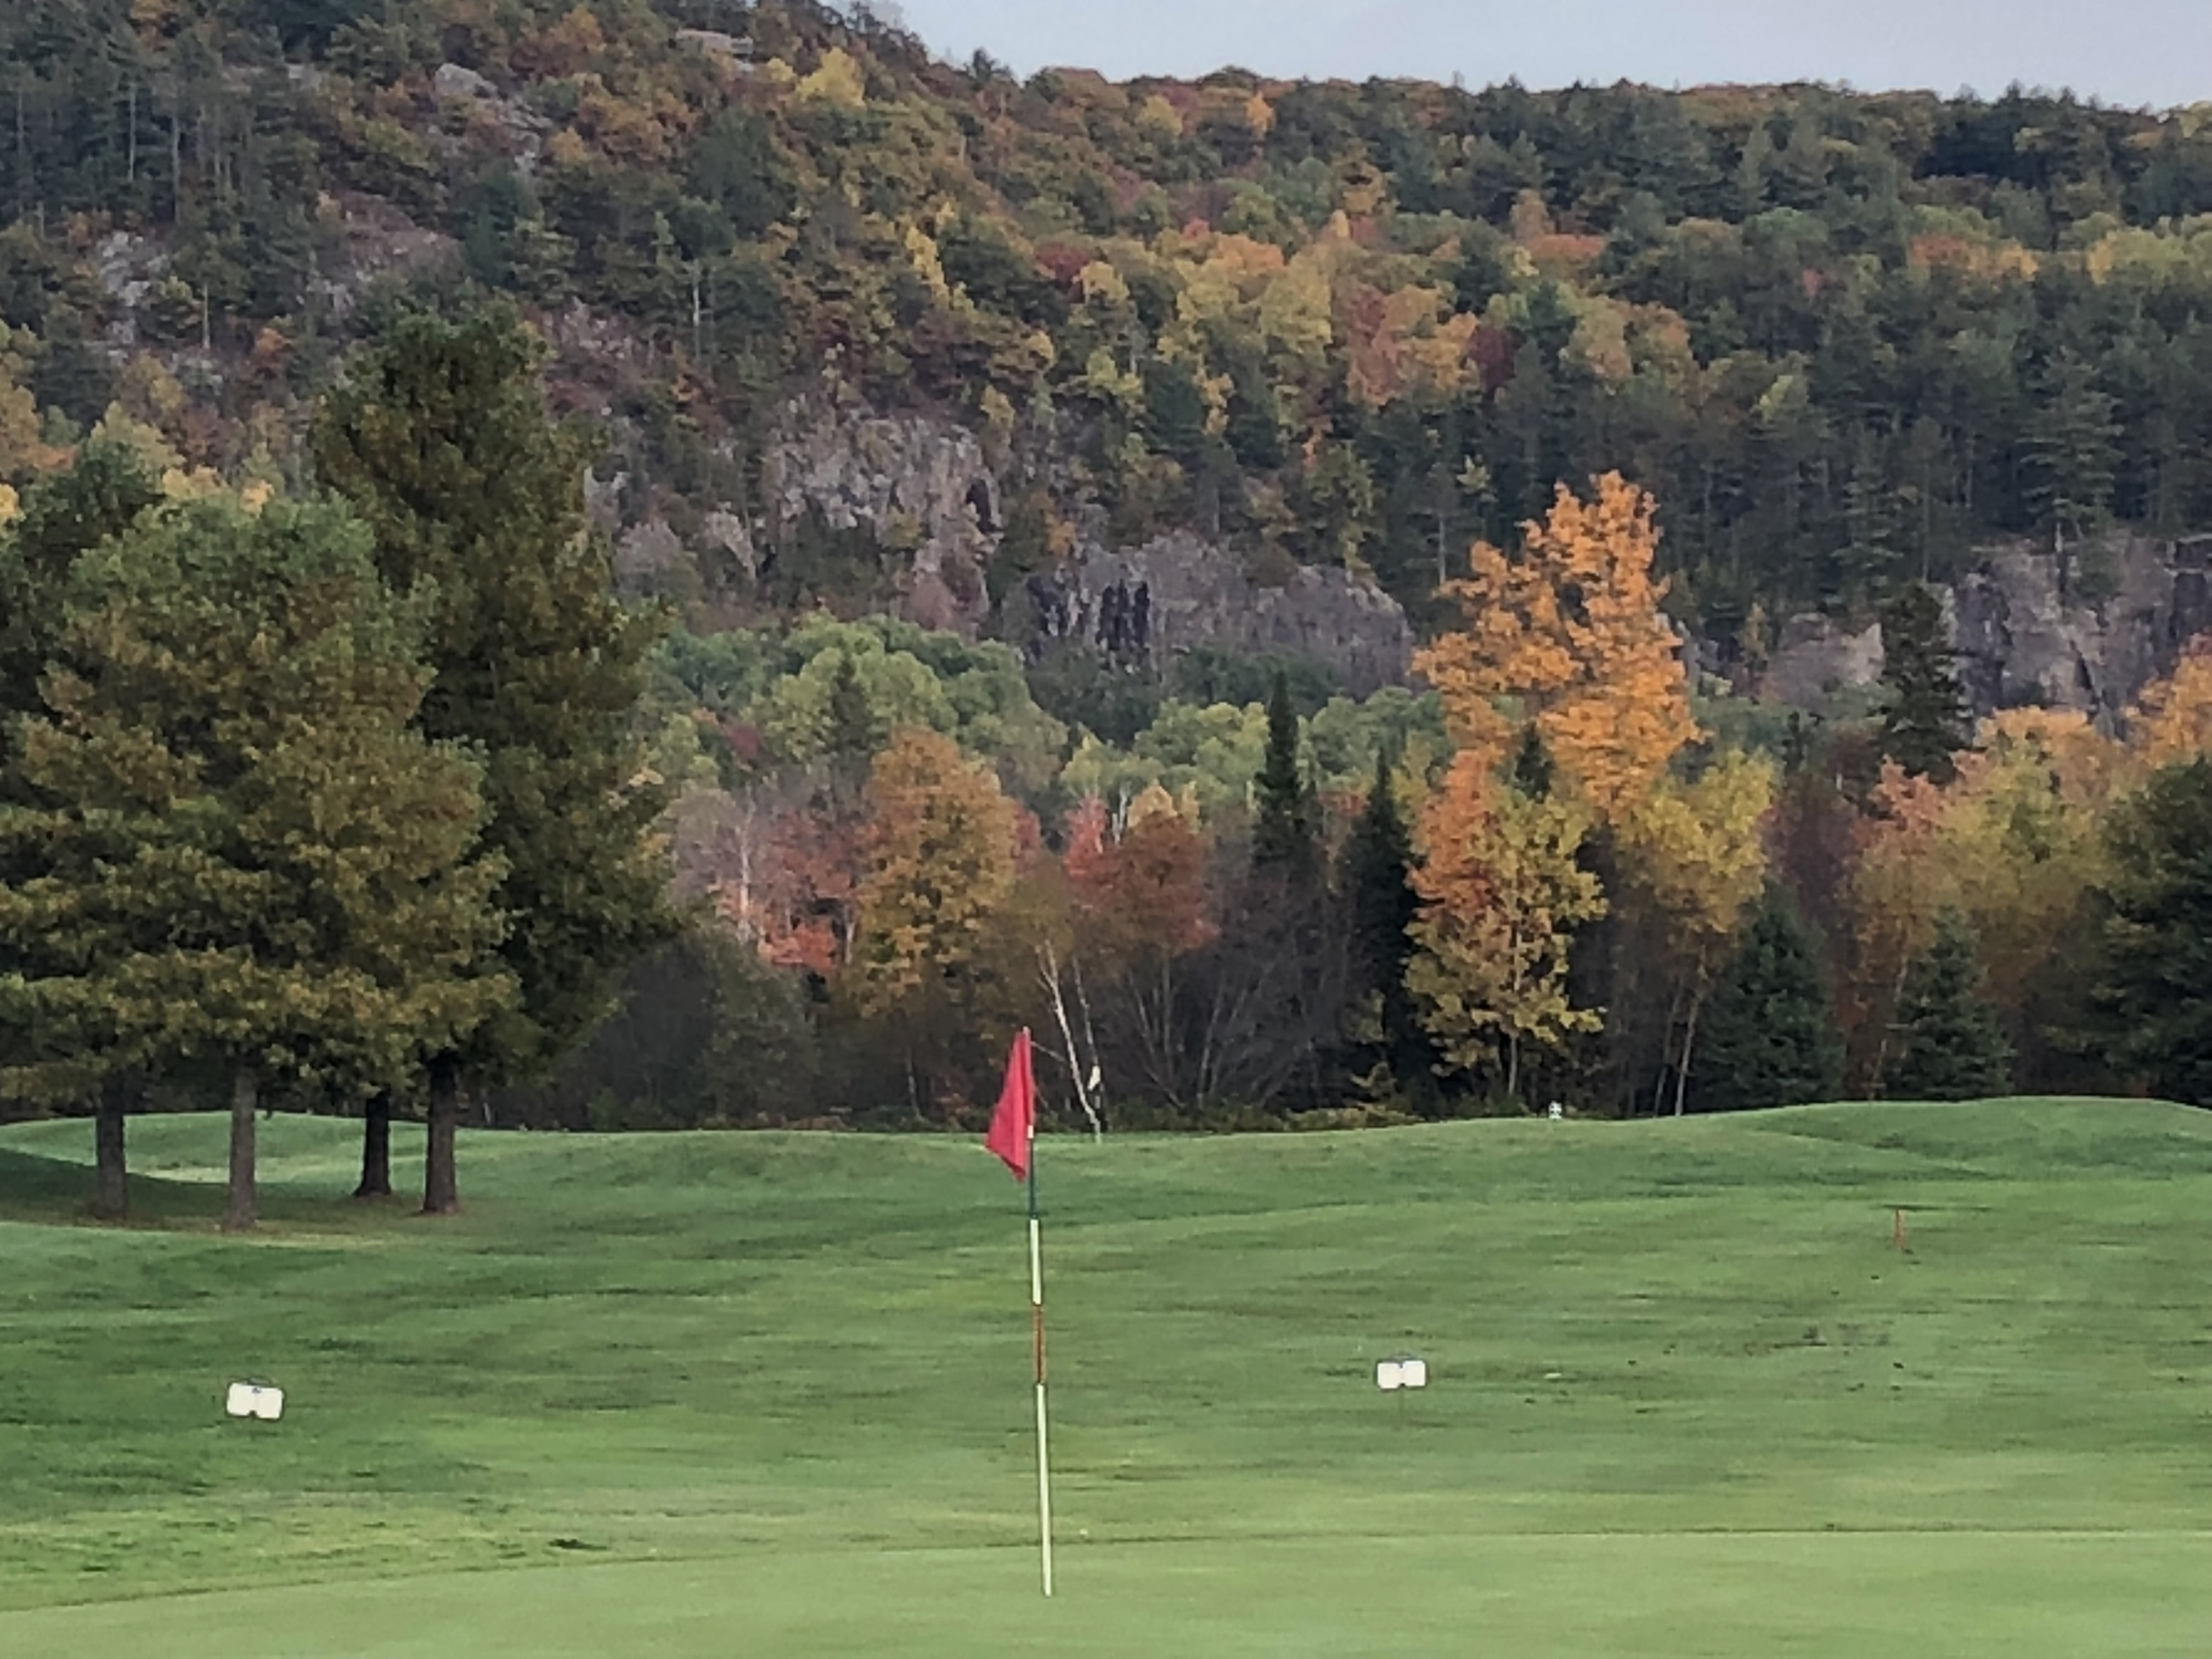 26+ Bancroft golf course for sale ideas in 2021